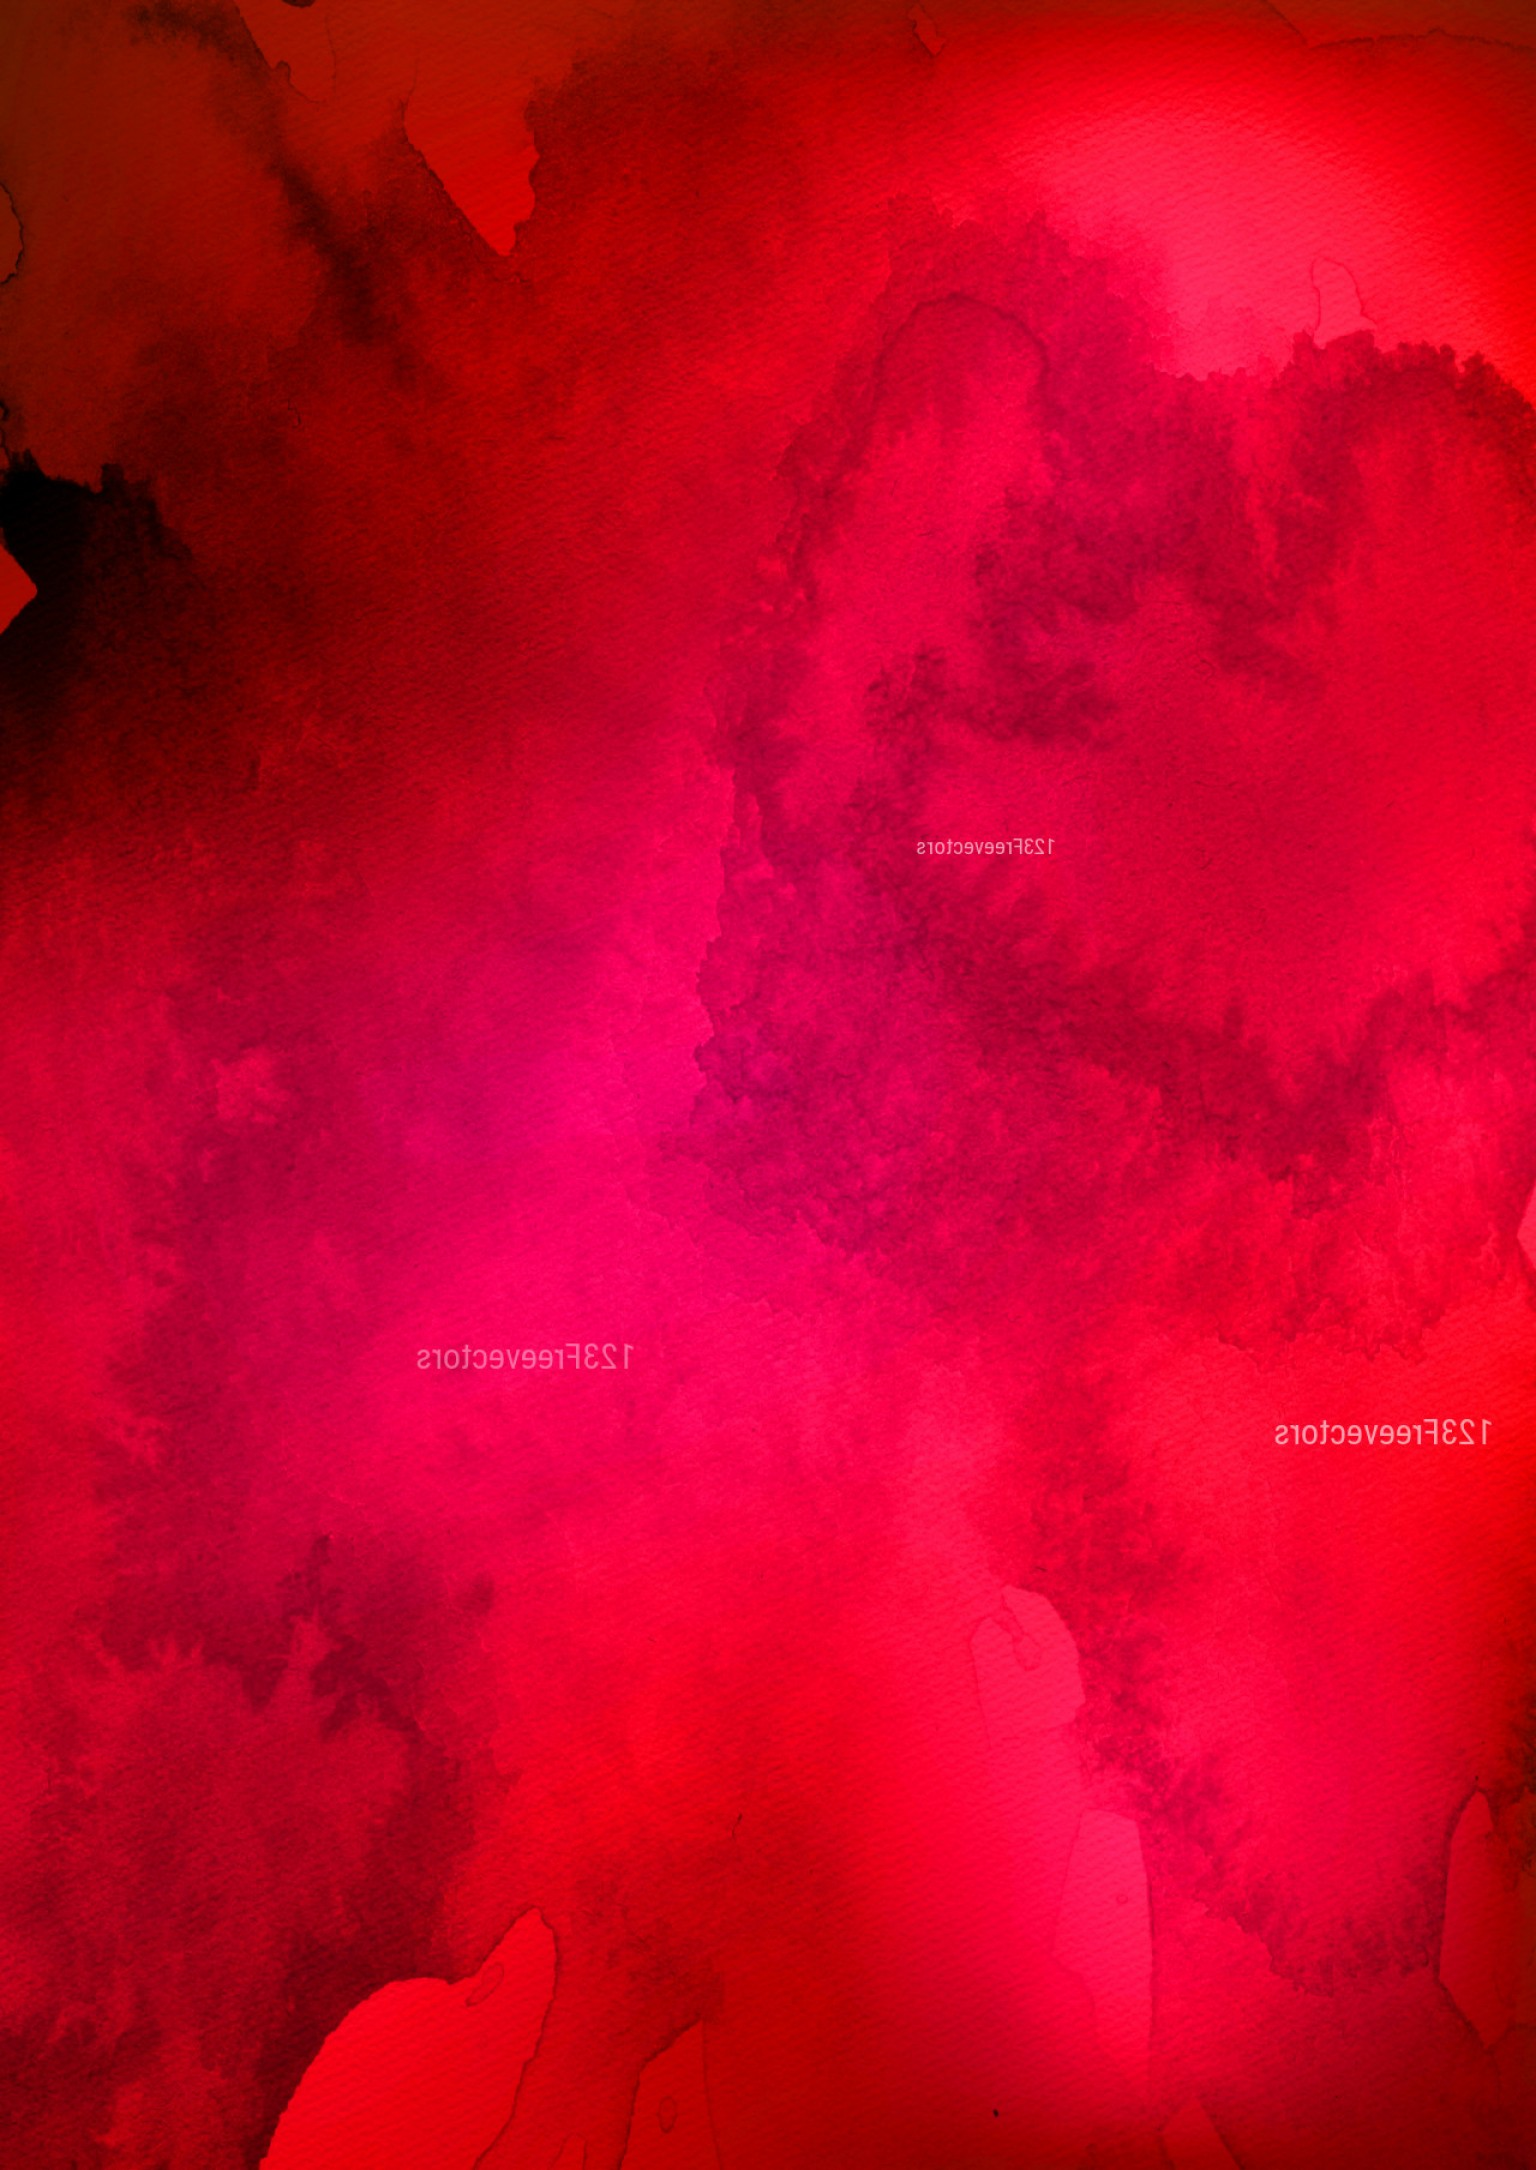 Distressed Red Background Vector: Dark Red Distressed Watercolour Background Image